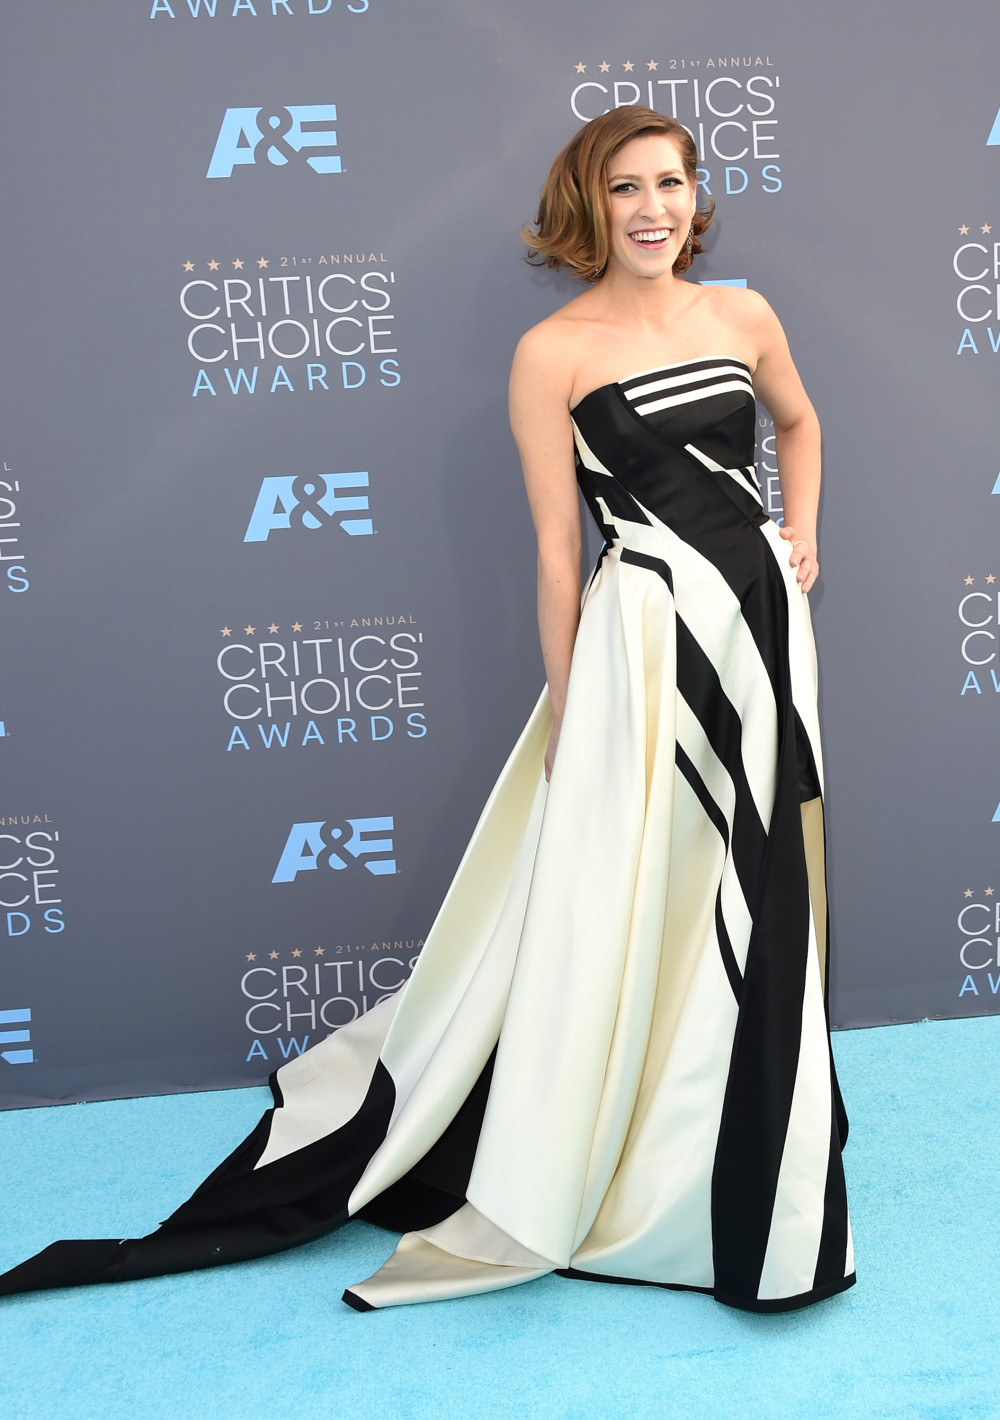 SANTA MONICA, CA - JANUARY 17: Actress Eden Sher attends the 21st Annual Critics' Choice Awards at Barker Hangar on January 17, 2016 in Santa Monica, California. (Photo by Jason Merritt/Getty Images)